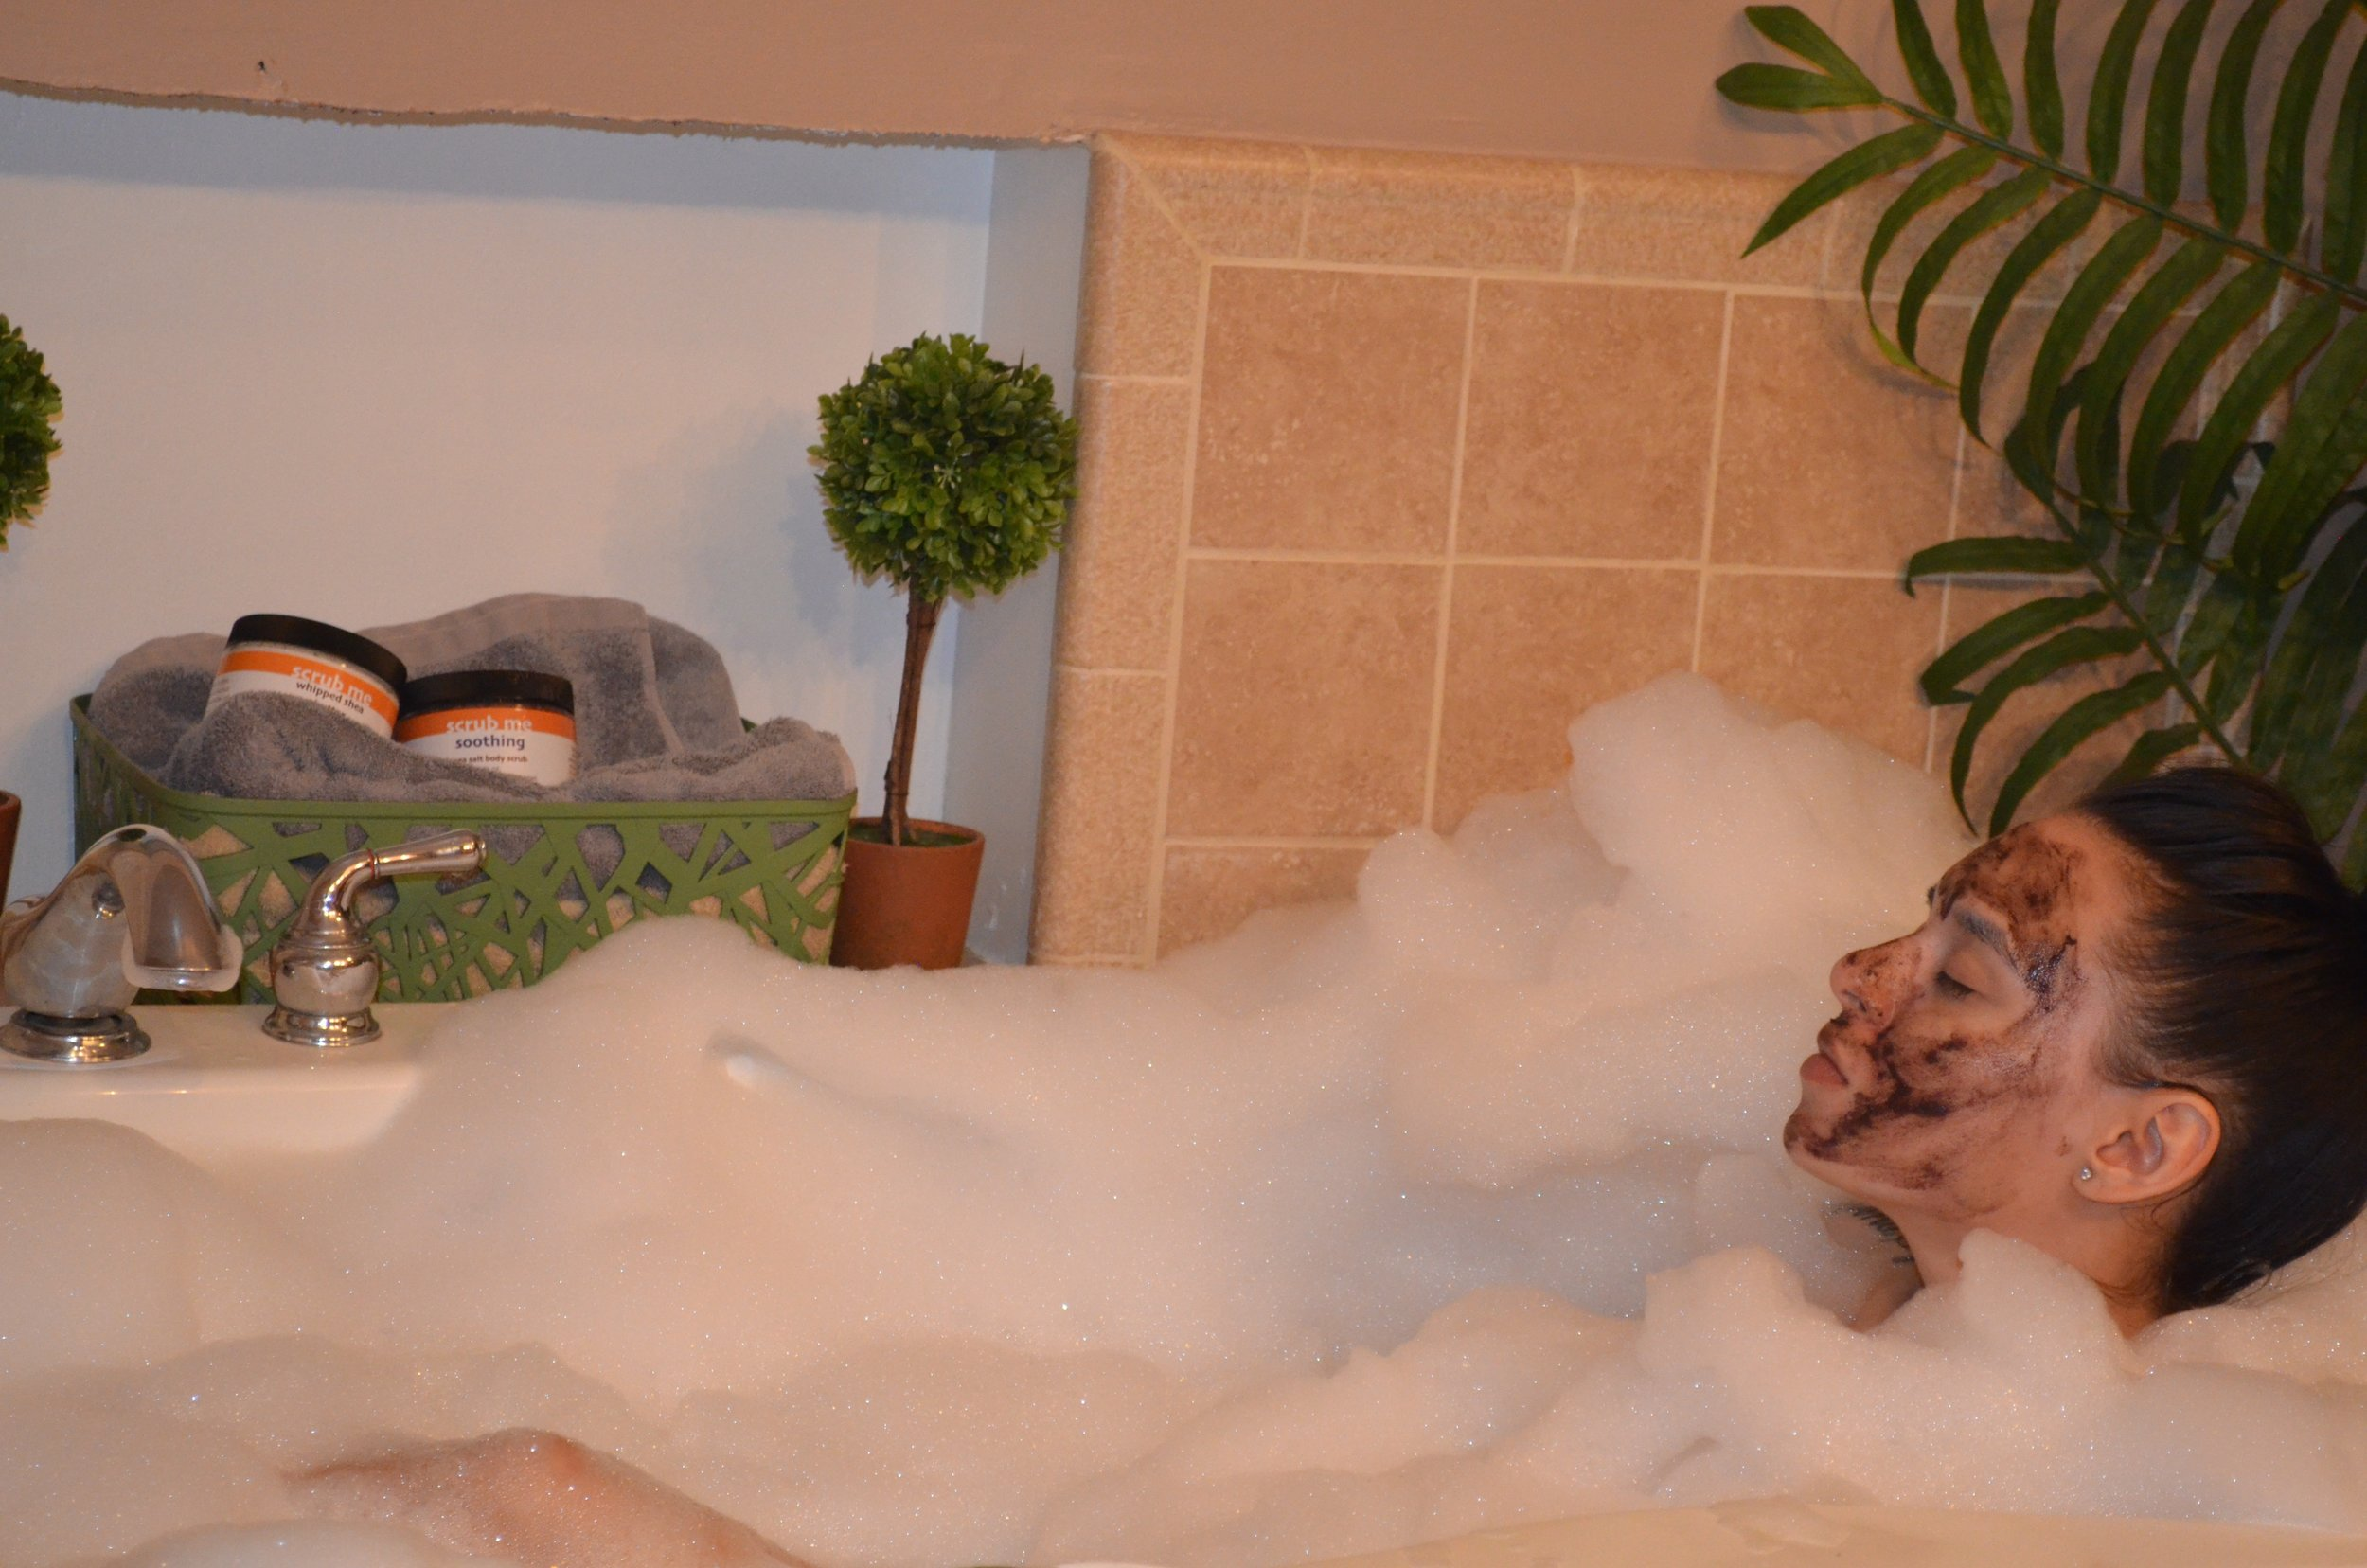 No better way to relax than with your favorite mask.